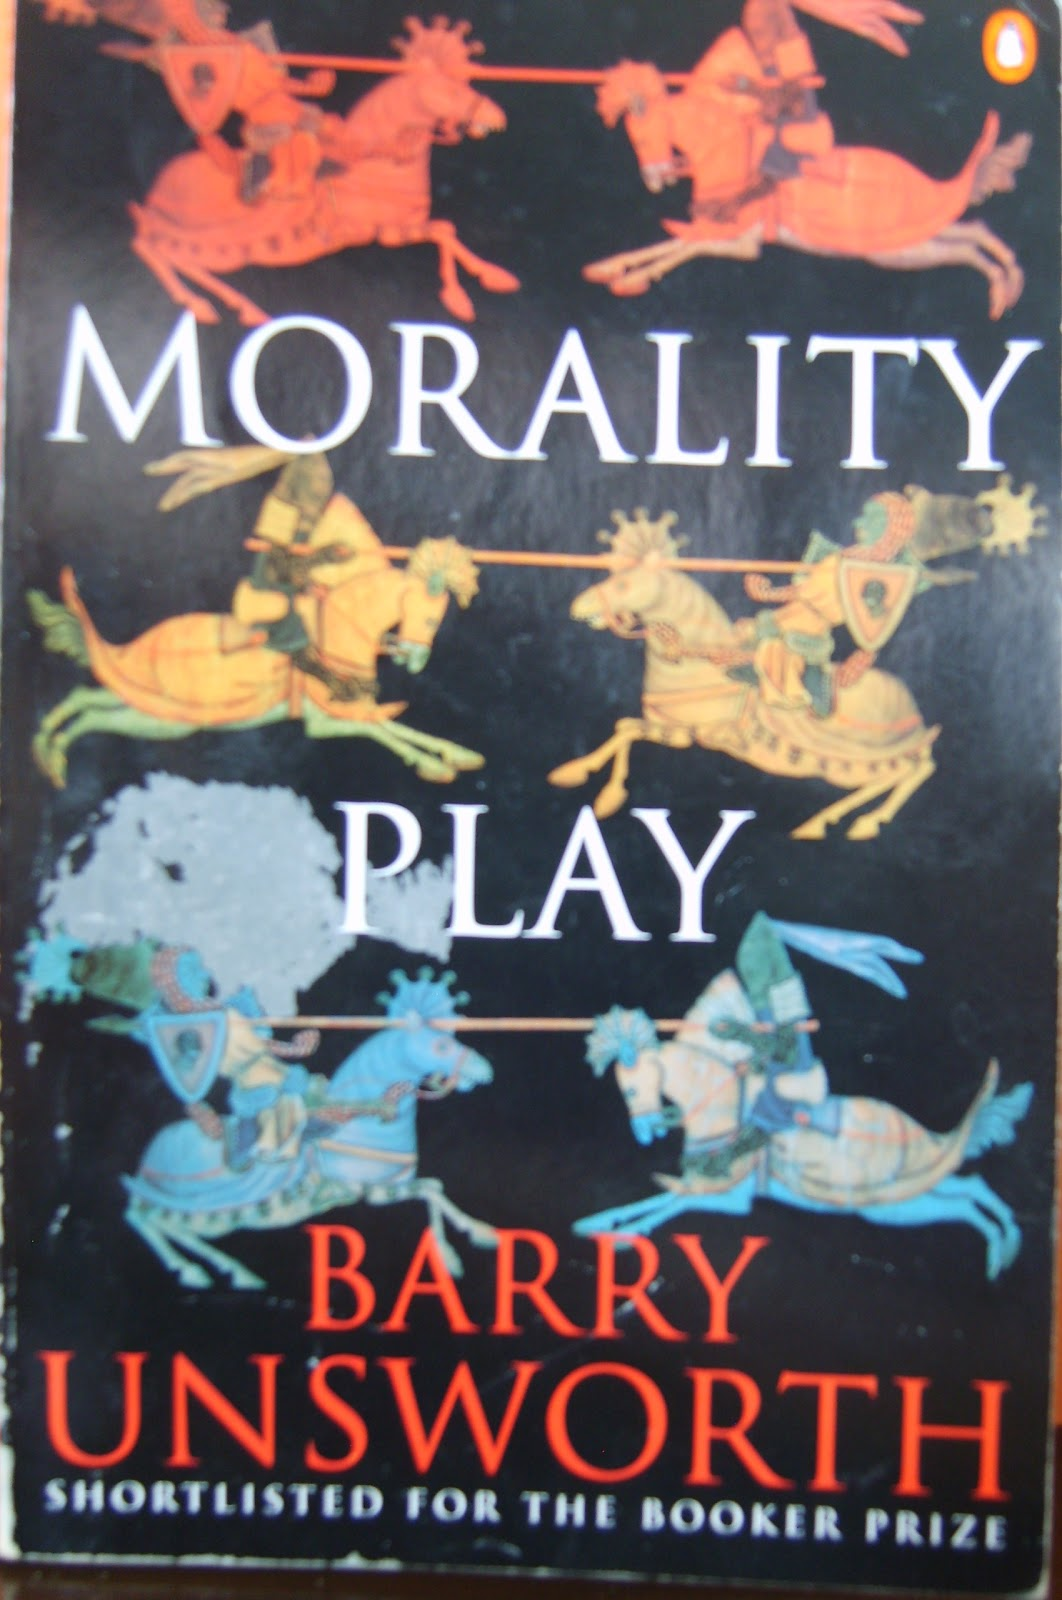 an analysis of vivid and descriptive passages in morality play by barry unsworth The progressive character of macbeth throughout the play we have evidence of macbeth's lively imagination soliloquy analysis.